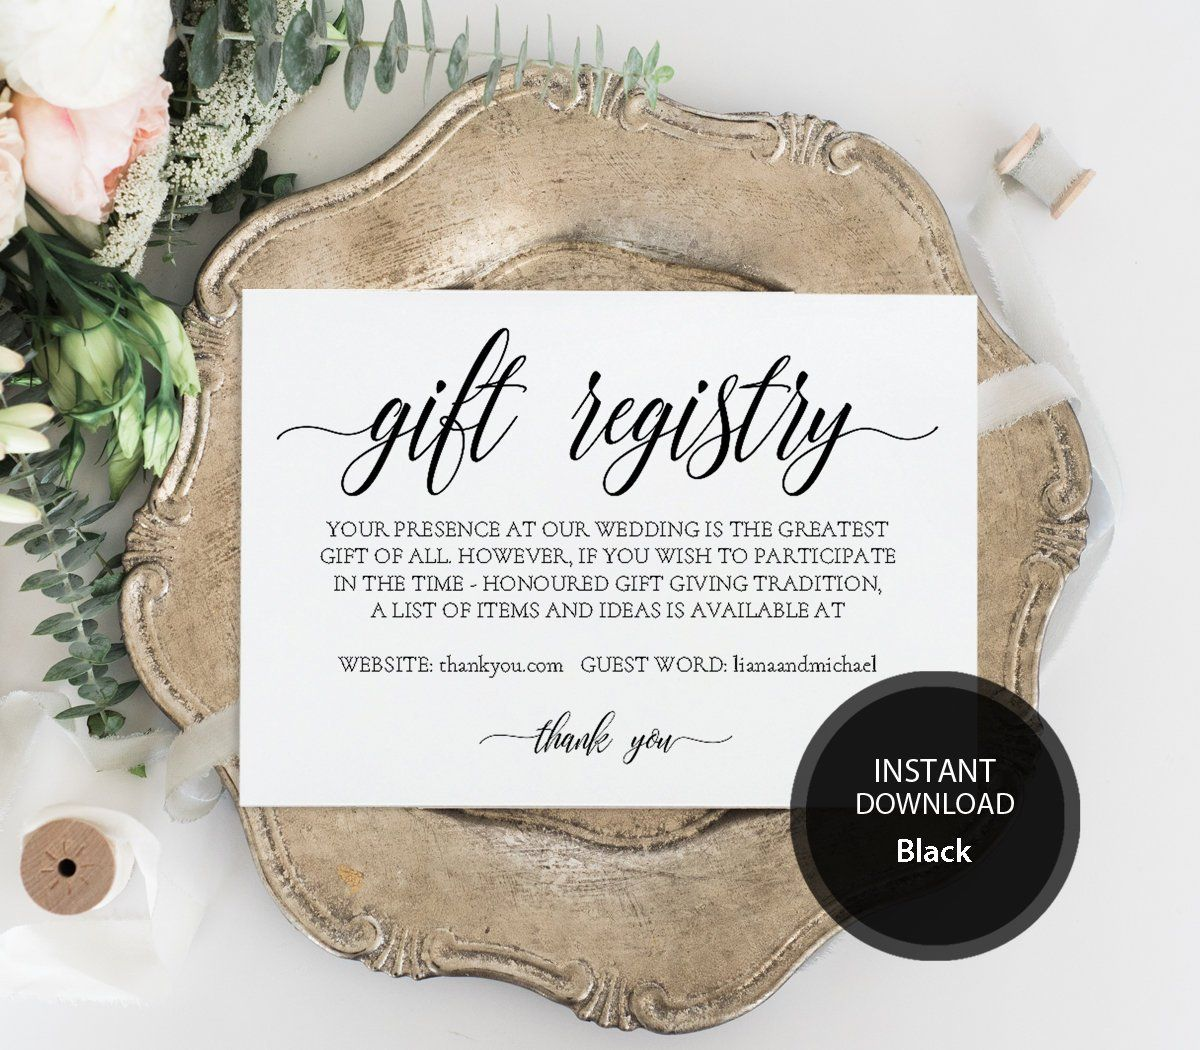 Editable Pdf Template Gift Registry Card 3 5x5 Instant Etsy Gift Registry Cards Wedding Registry Cards Registry Cards